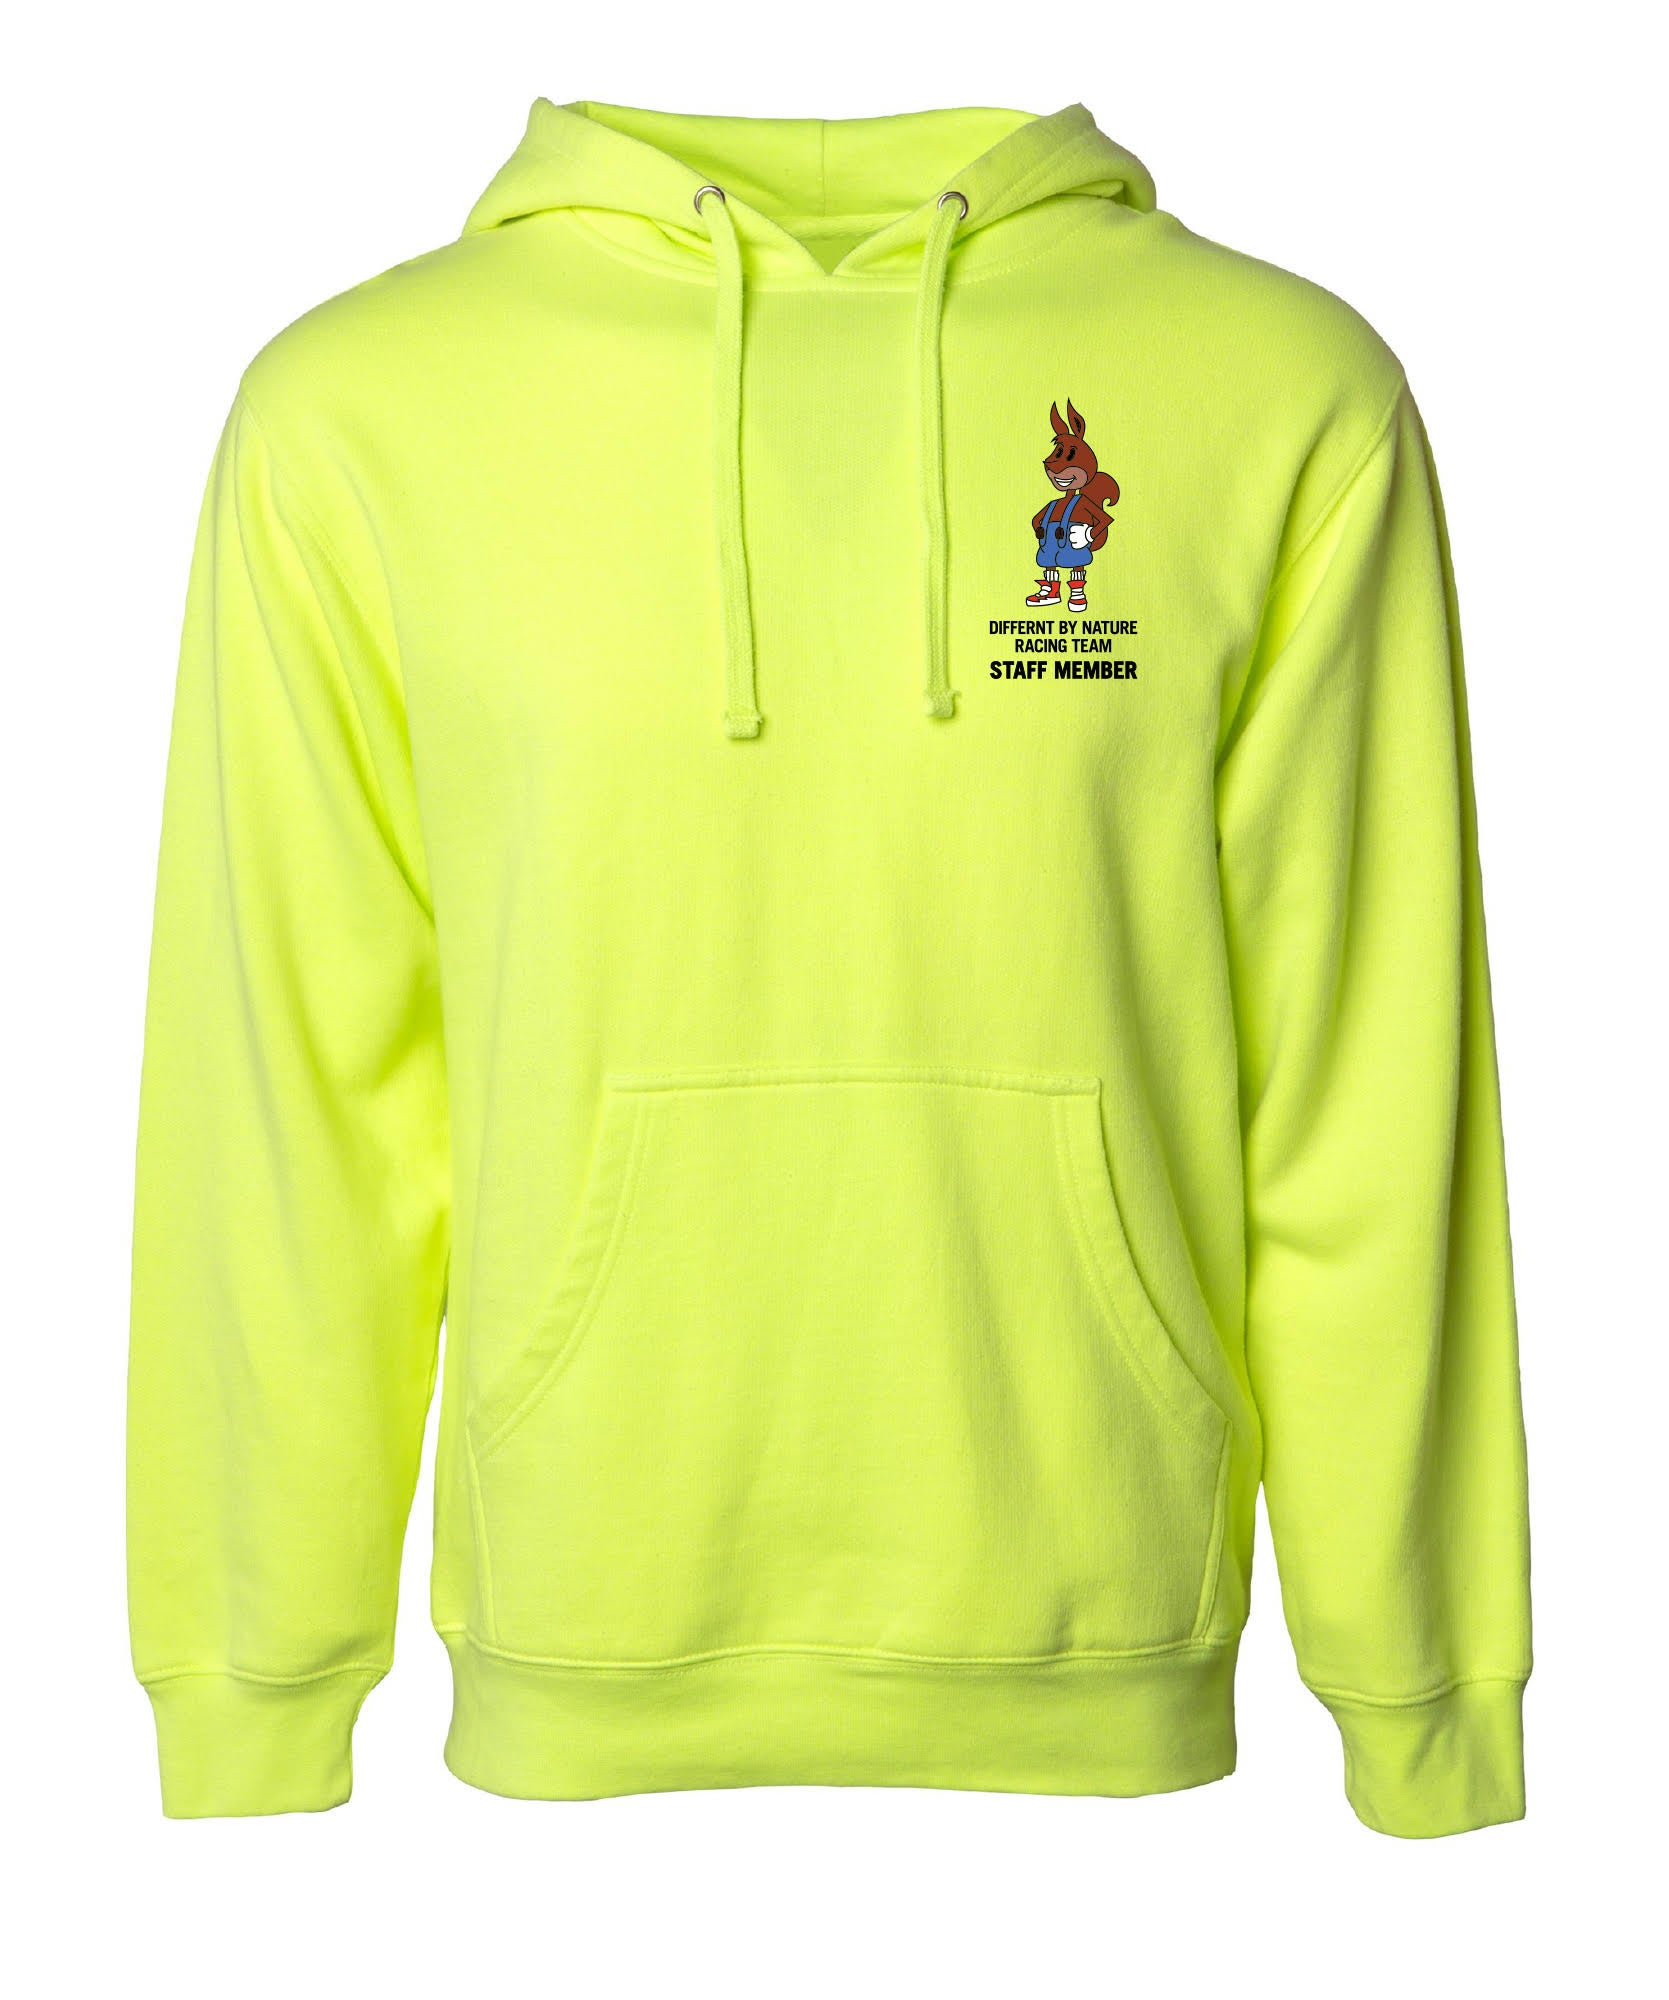 """Image of Differnt By Nature """"Safety Yellow"""" Hoodie"""